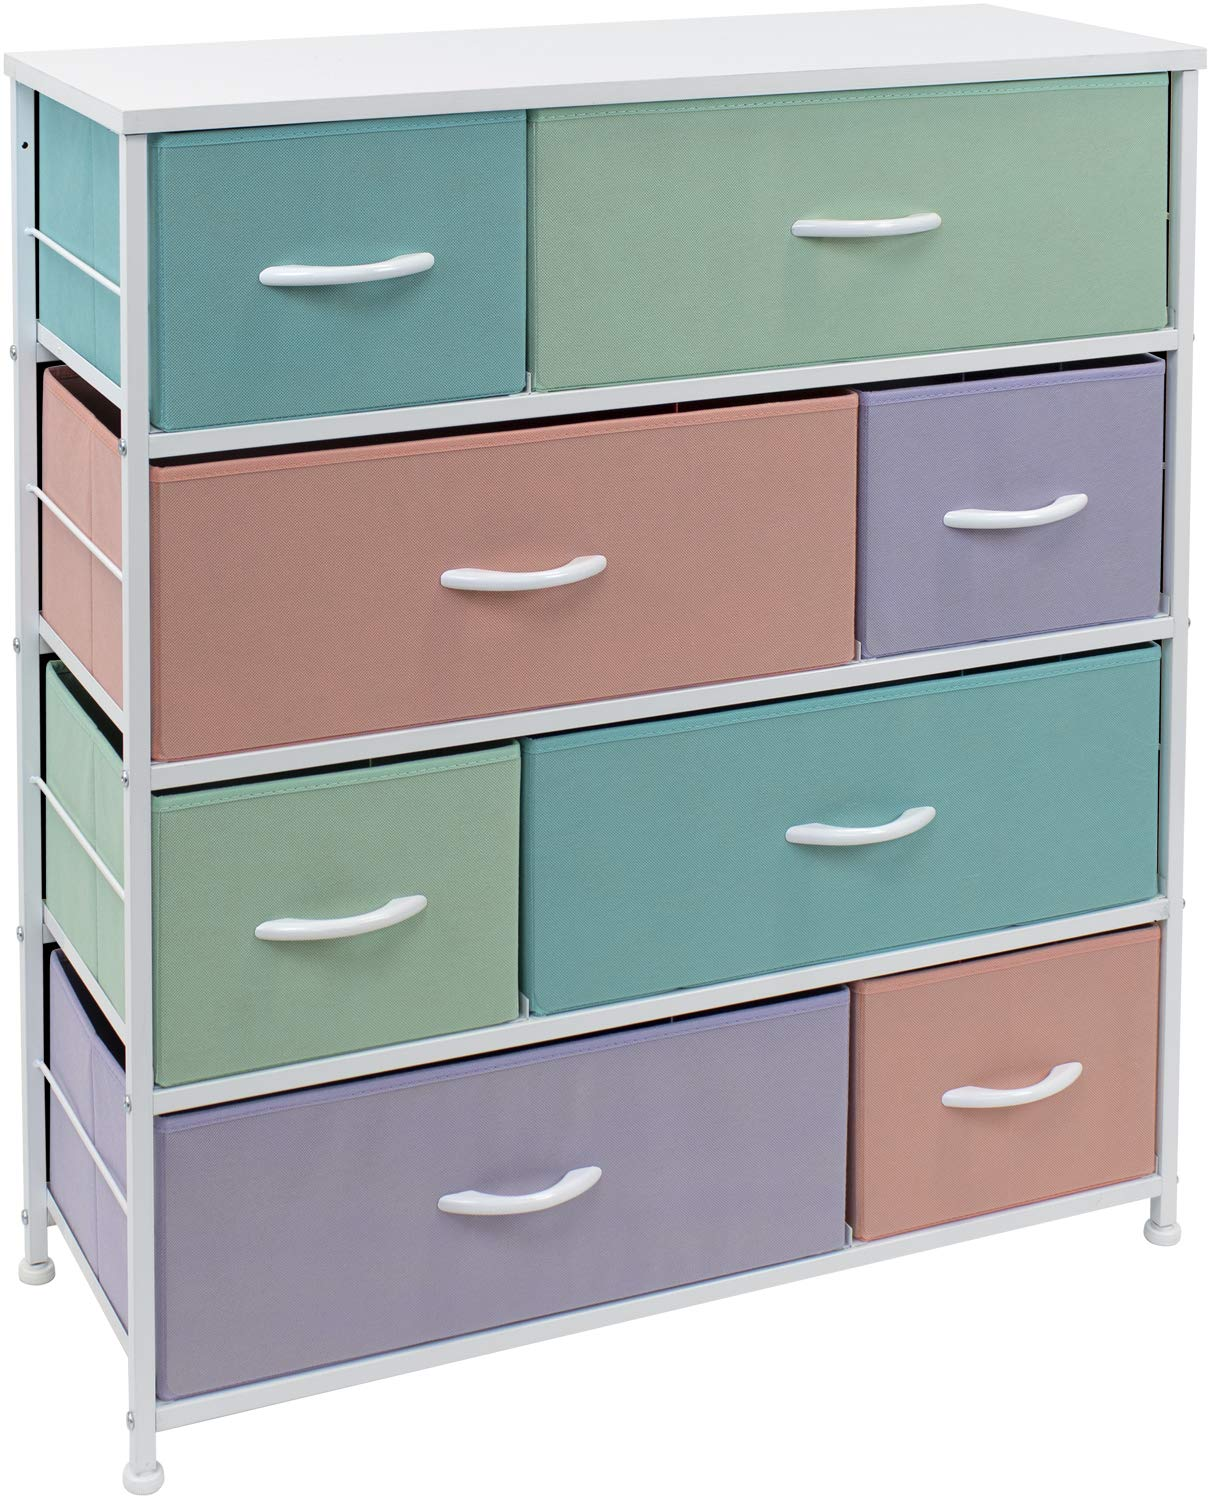 Sorbus Dresser with 8 Drawers - Bedside Furniture & Night Stand End Table Dresser for Home, Bedroom Accessories, Office, College Dorm, Steel Frame, Wood Top (Pastel)